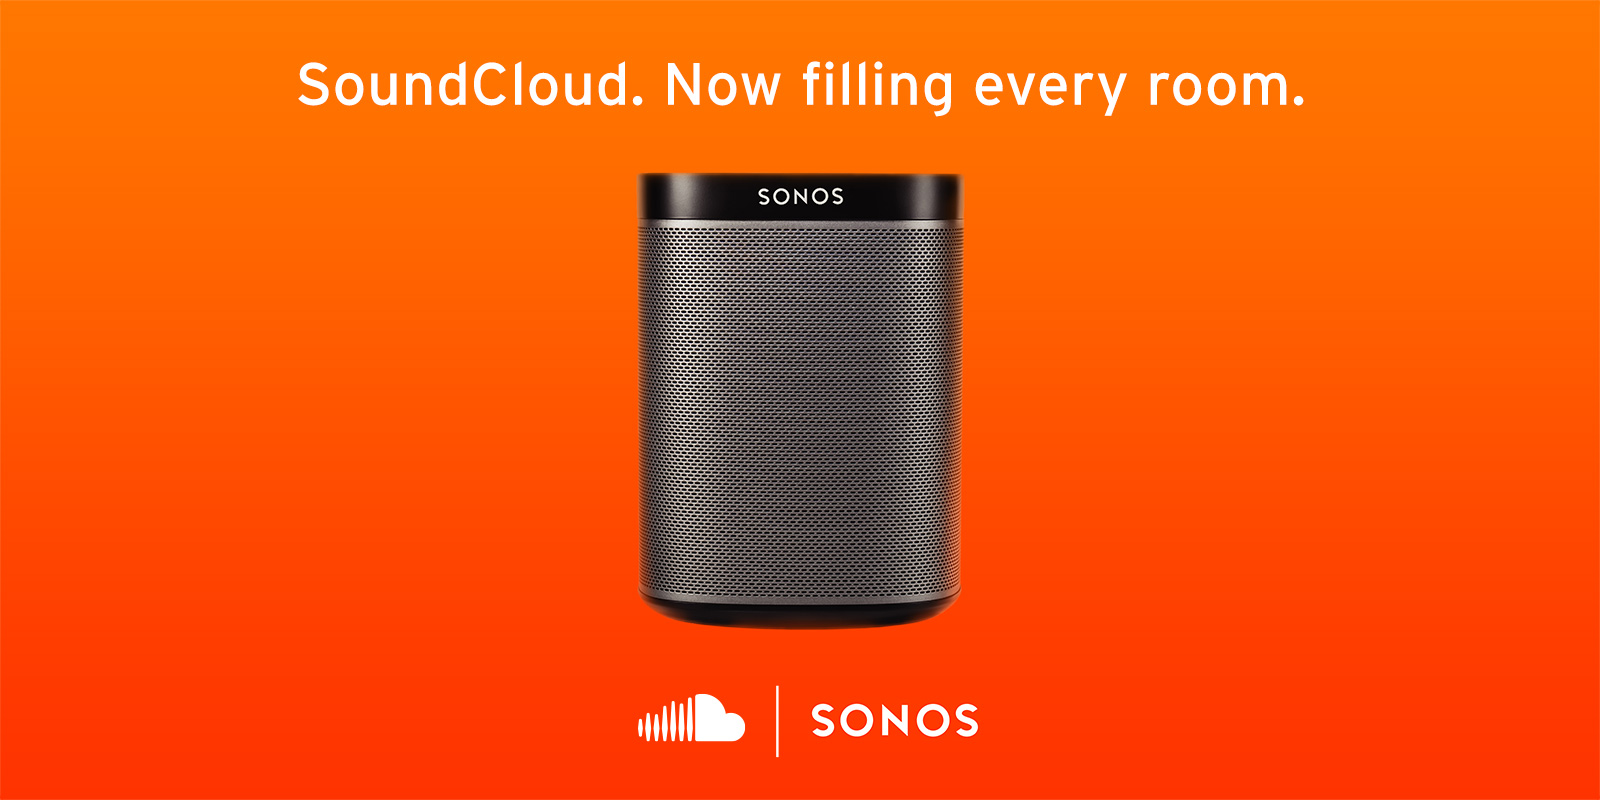 SoundCloud + Sonos